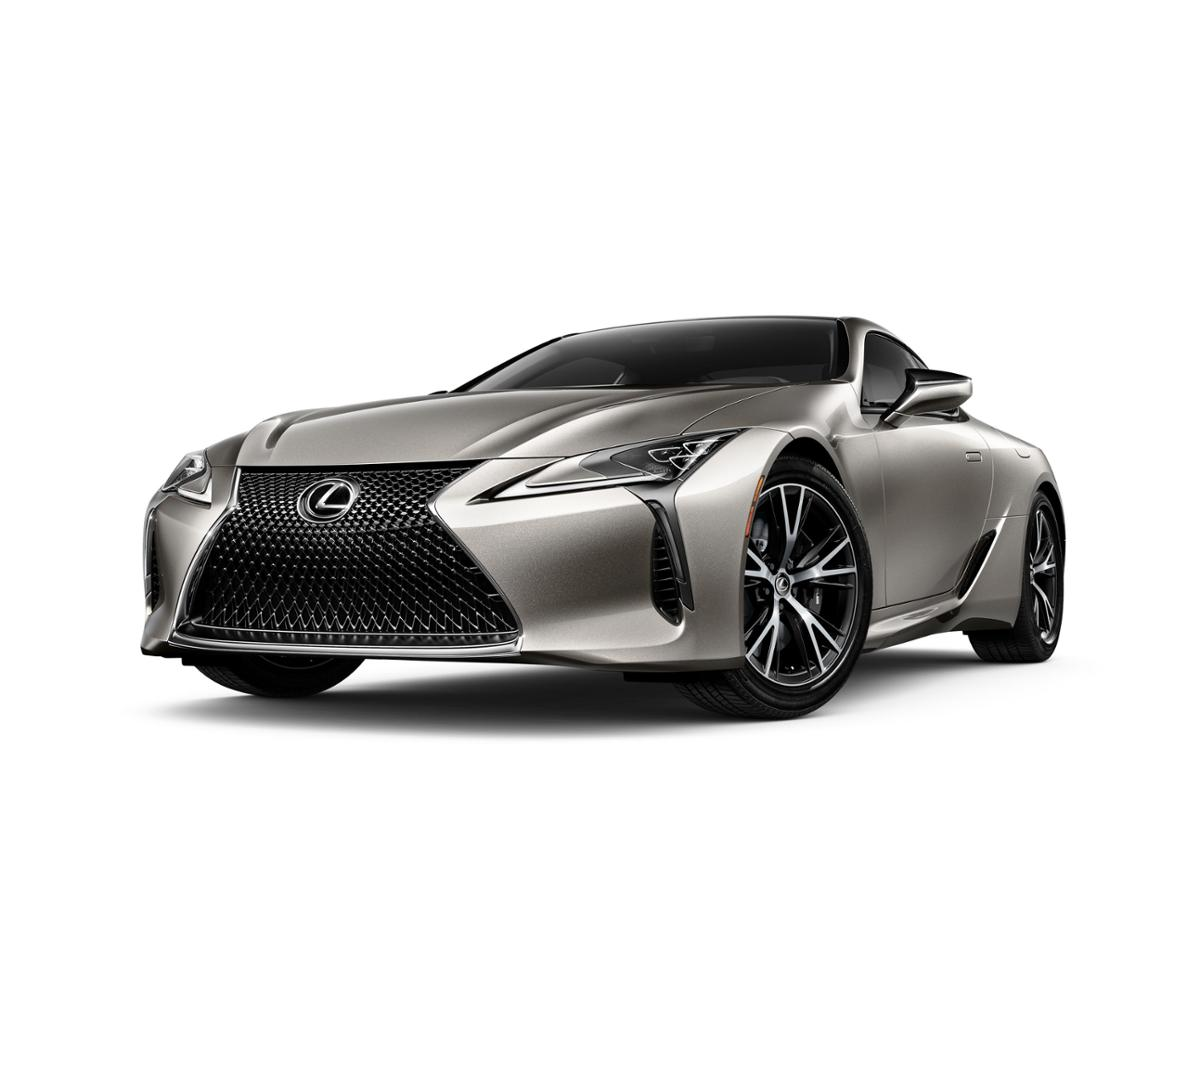 2018 Lexus LC 500 Vehicle Photo in Lakeway, TX 78734